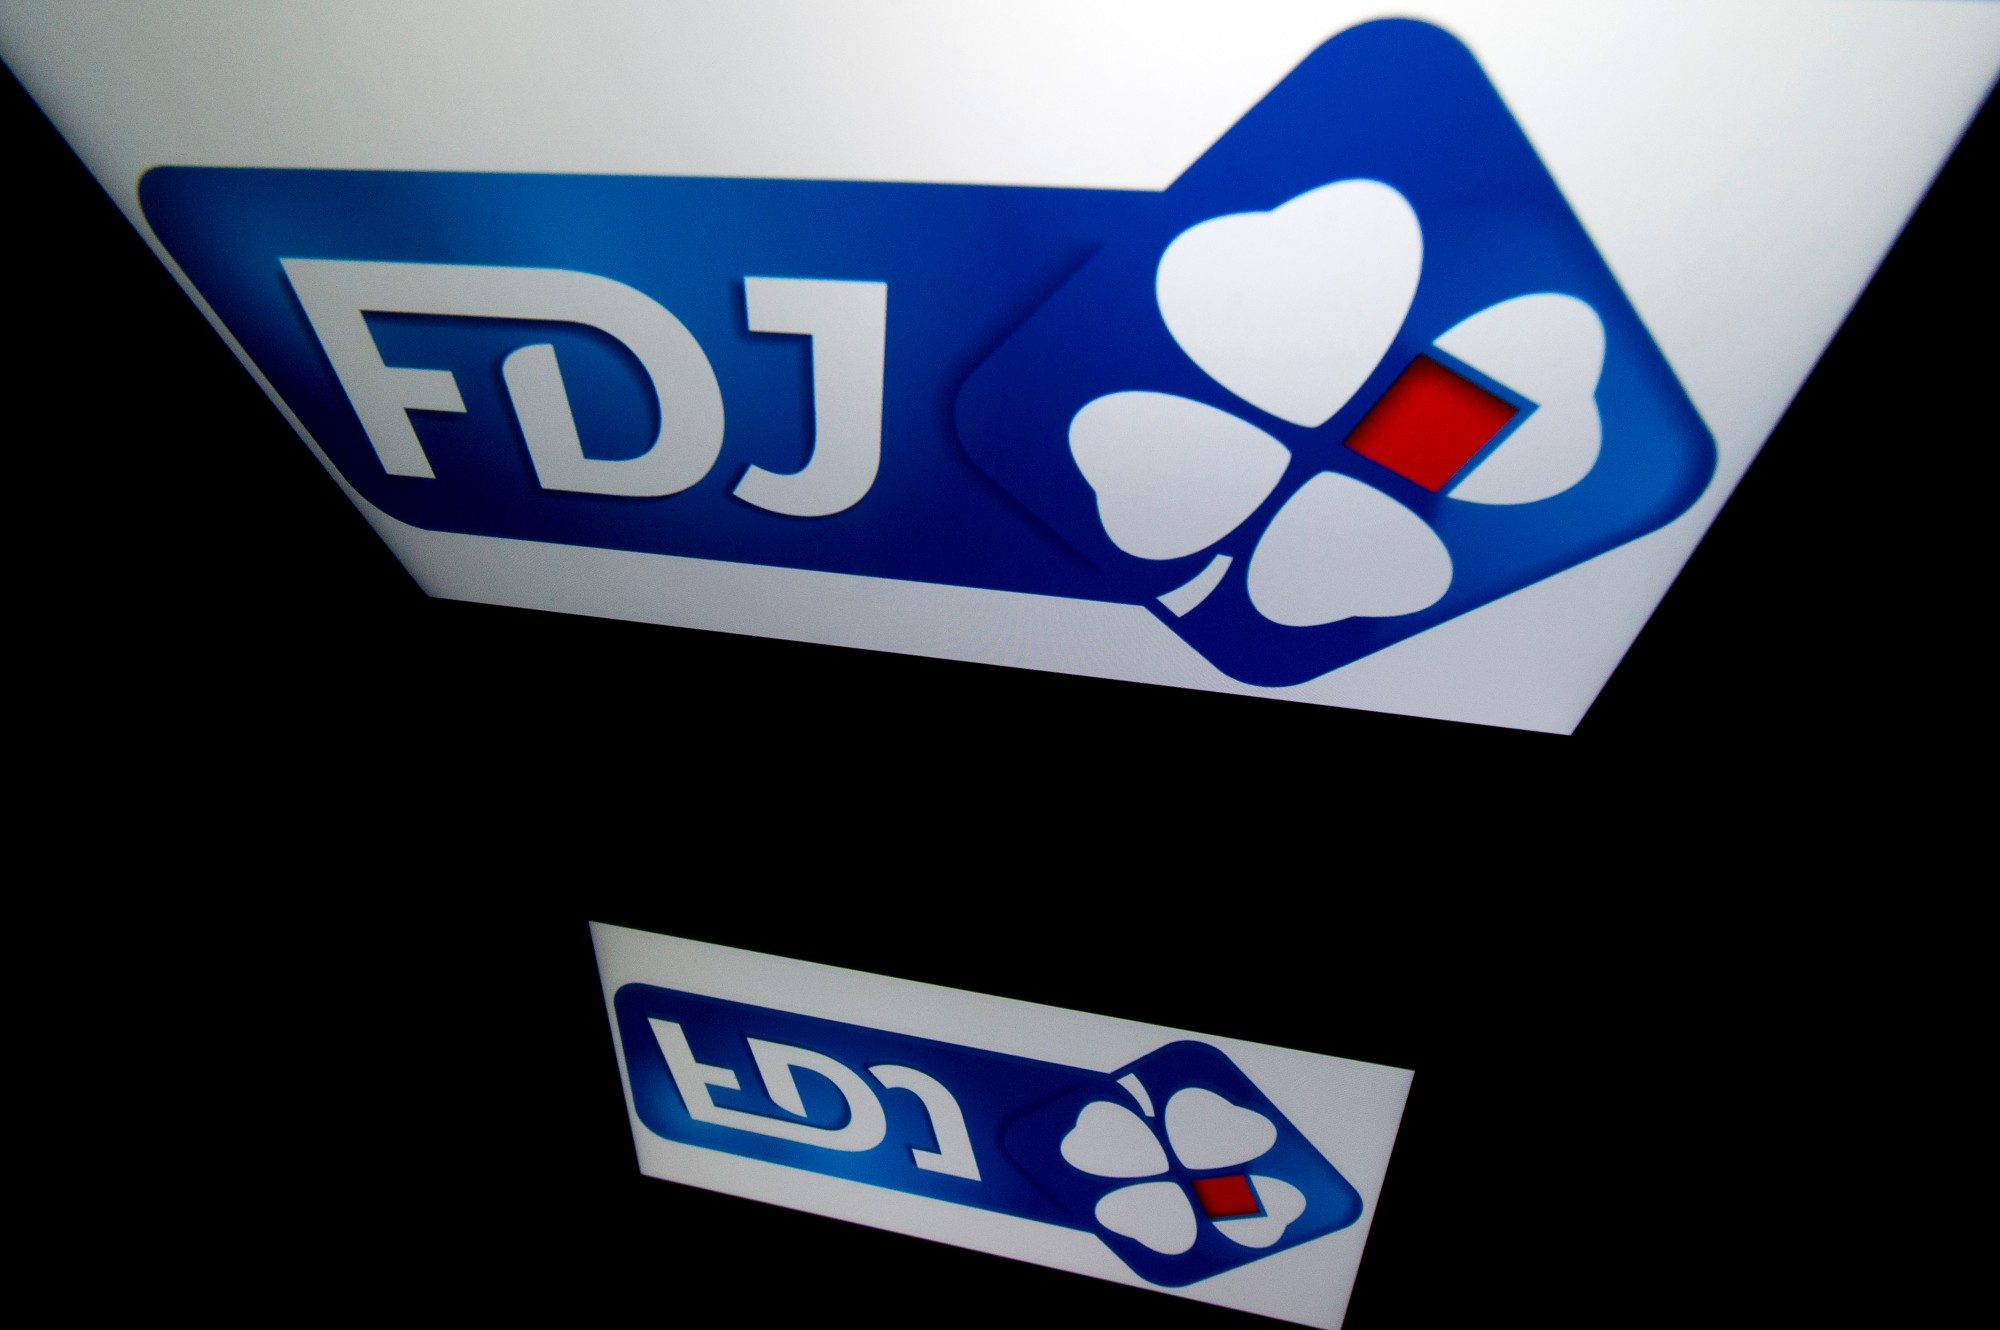 Le FDJ lance son introduction en bourse